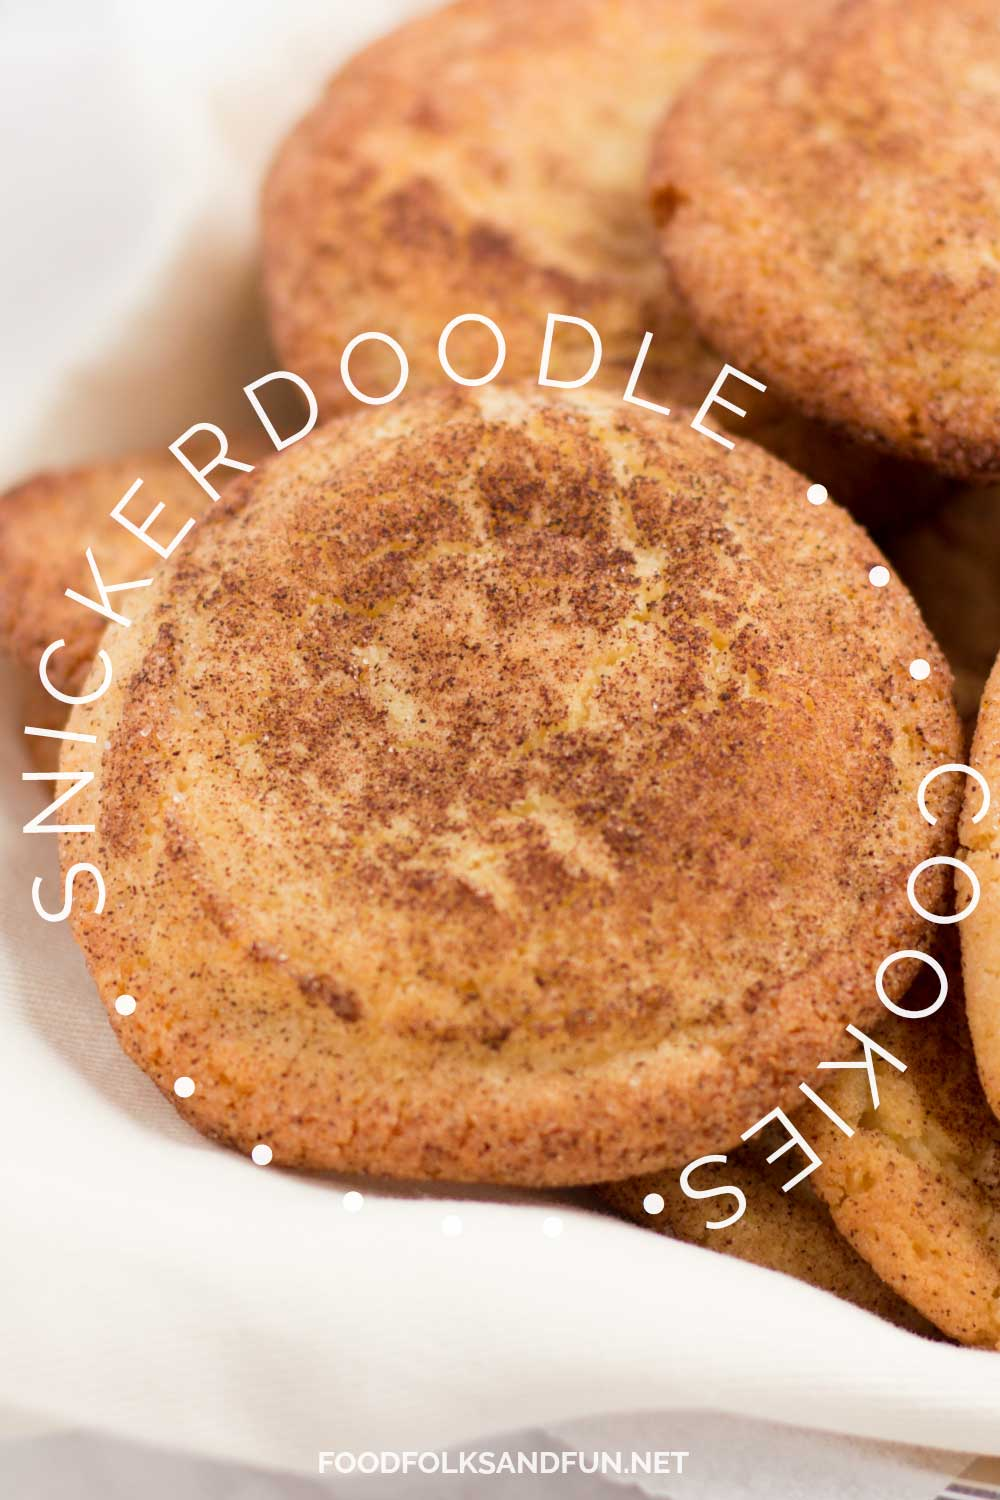 Snickerdoodle cookies with text overlay for Pinterest